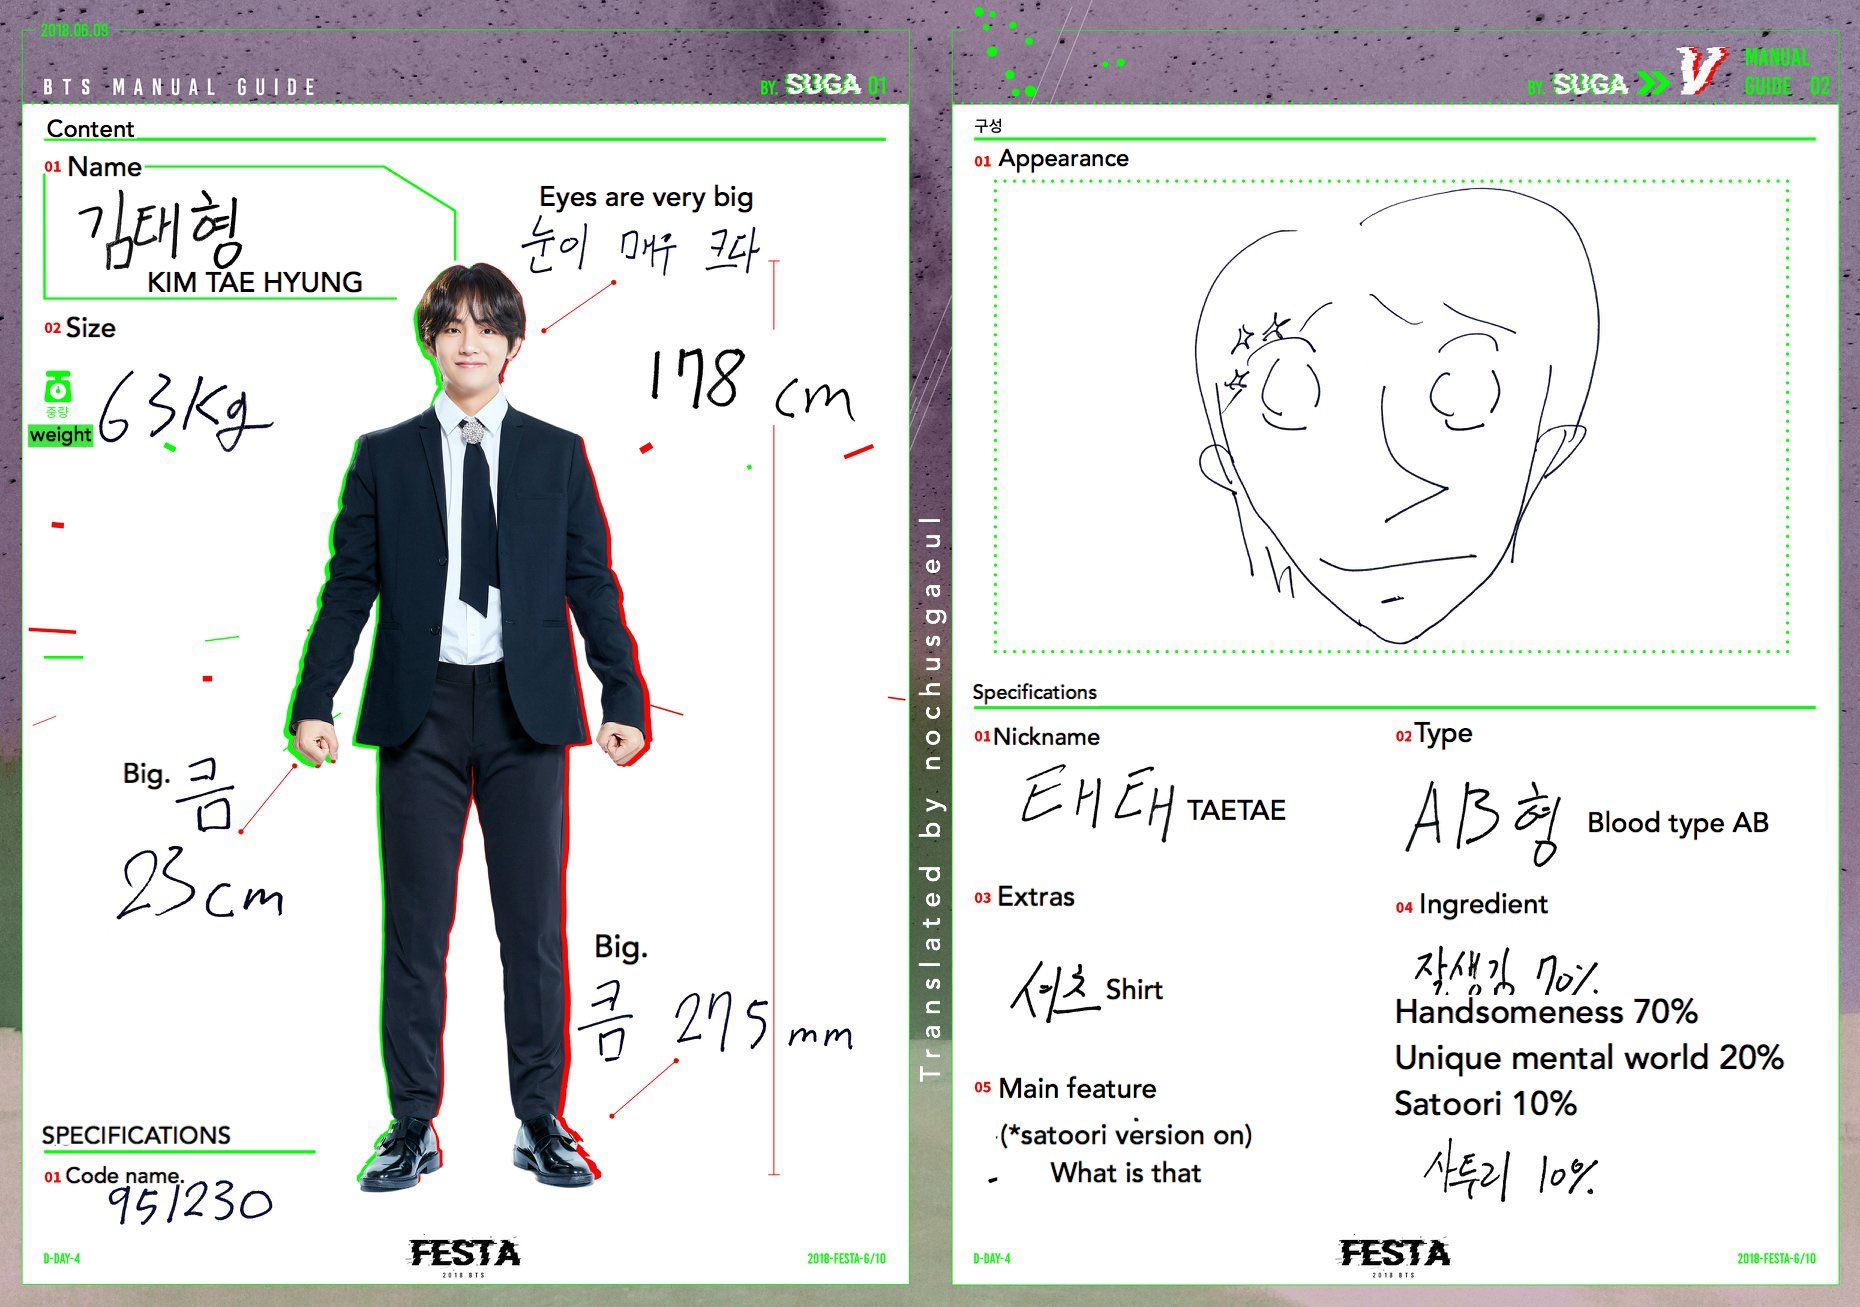 x9q1 dfmub21w0aagr1h - [Picture] 2018 BTS FESTA : BTS MANUAL GUIDE [180809]